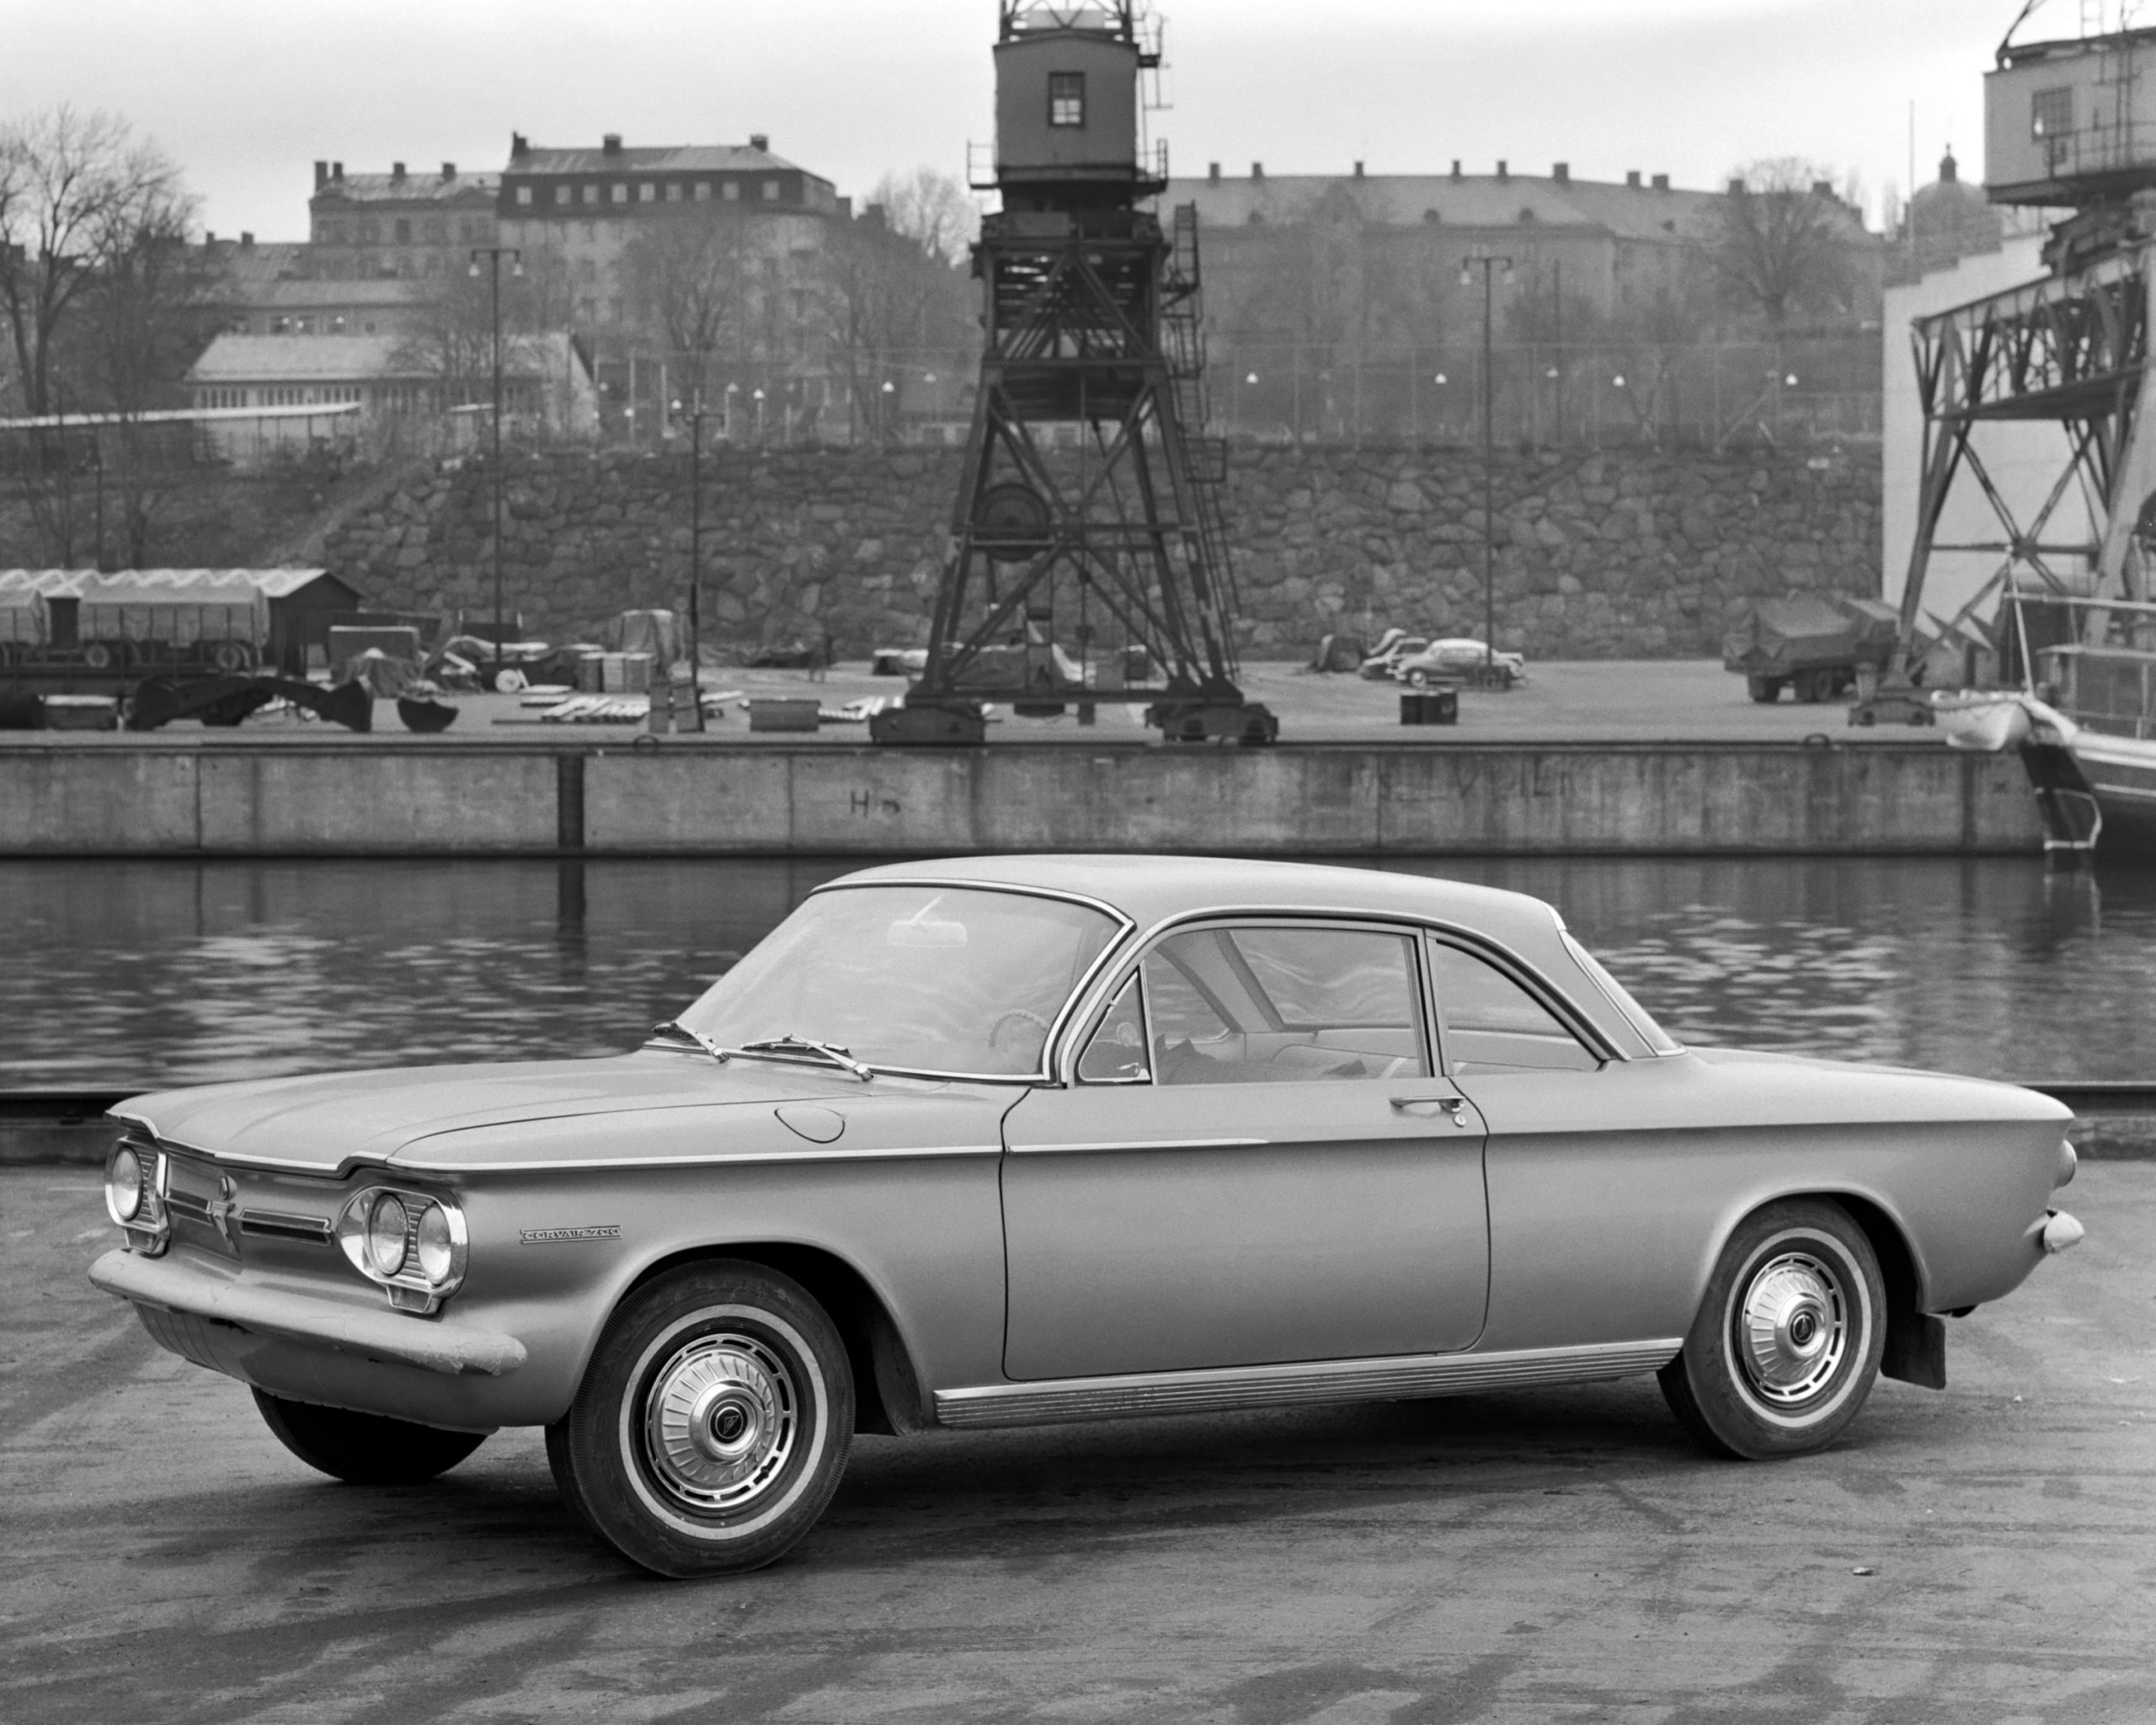 Experiments carried out to improve the roadholding of the compact Chevrolet Corvair were what first showed the advantages of using an extractor at the rear of the car